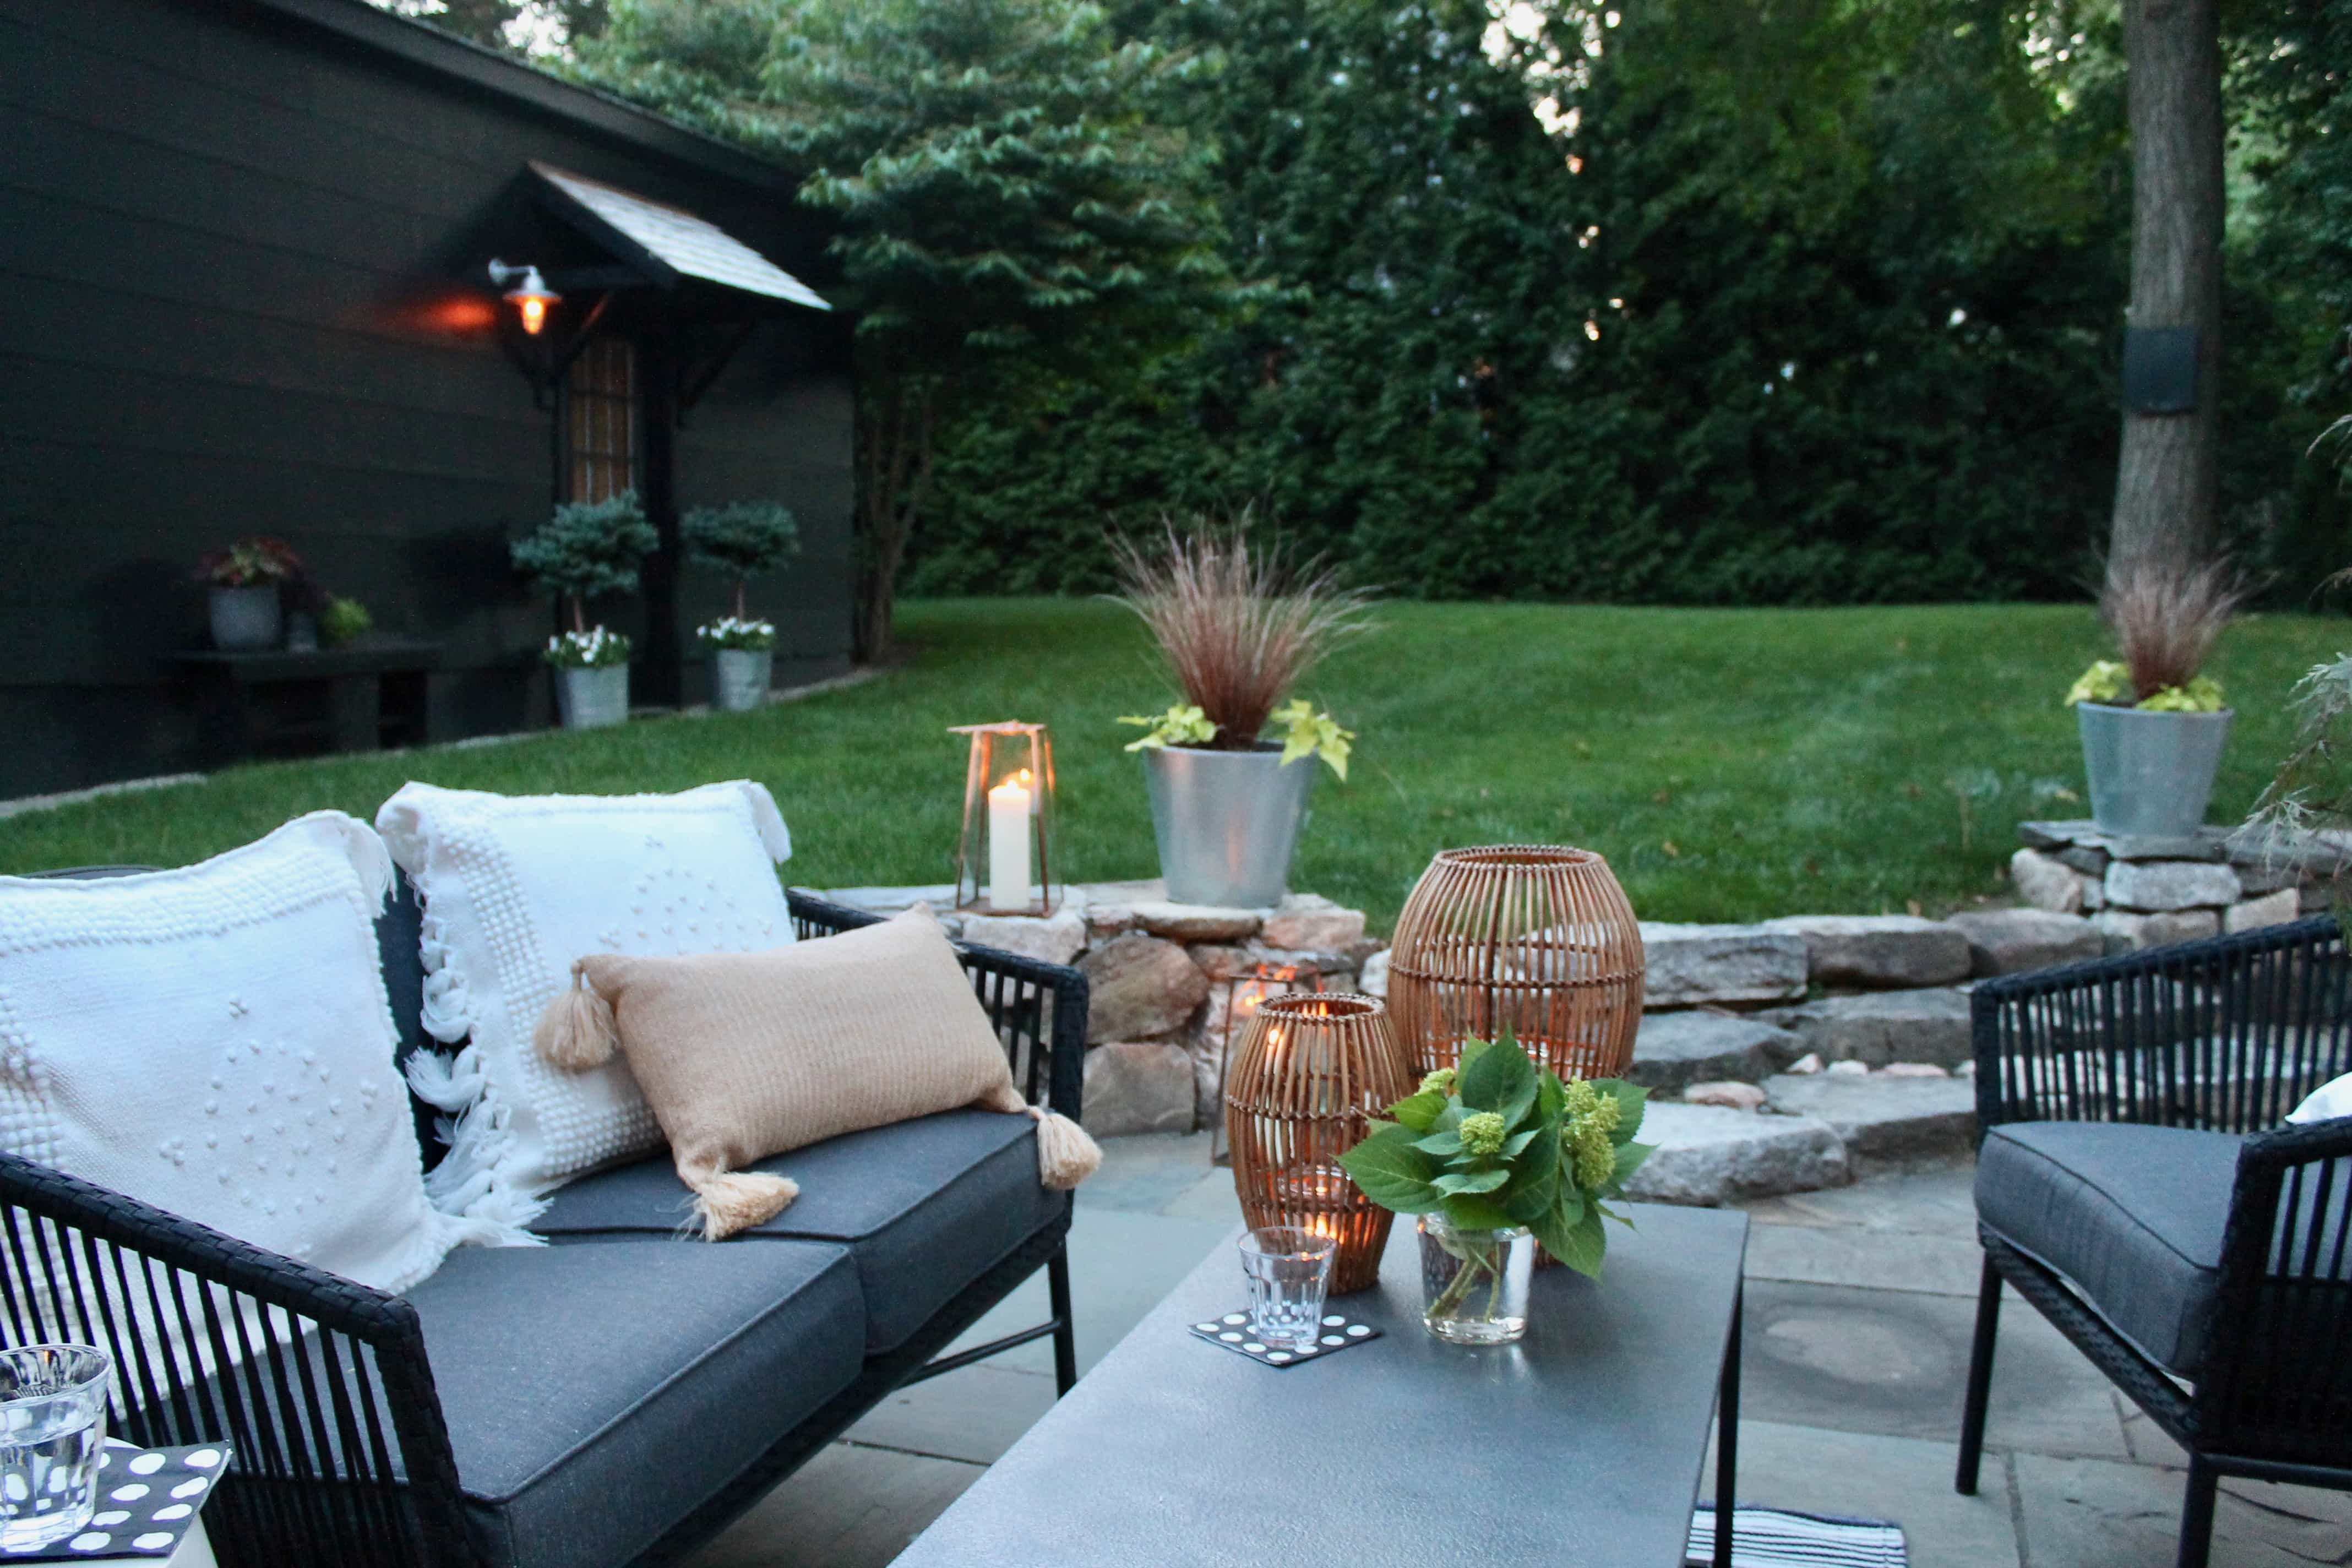 Create An Outdoor Space For A Lot Less Than You Think With Target Most Lovely Things